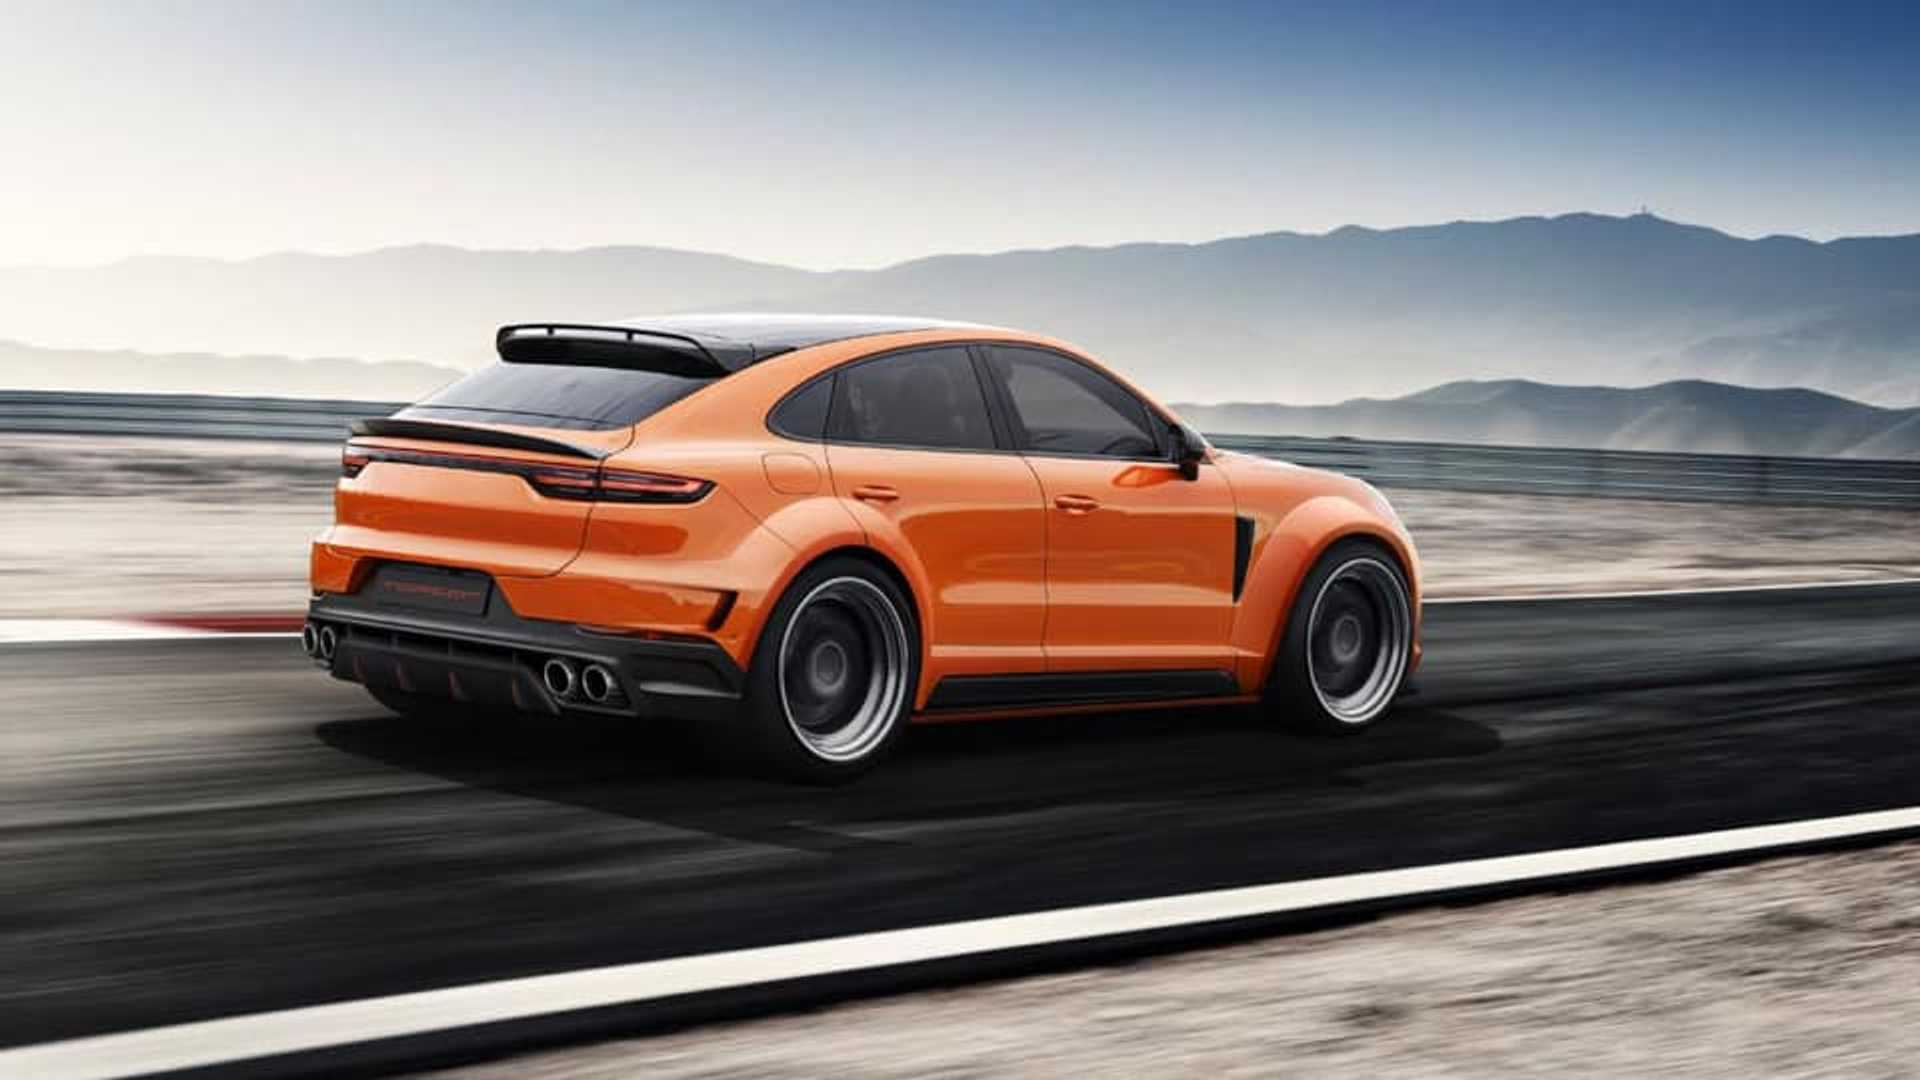 Tuned Porsche Cayenne Coupe Already Planned 1920x1080